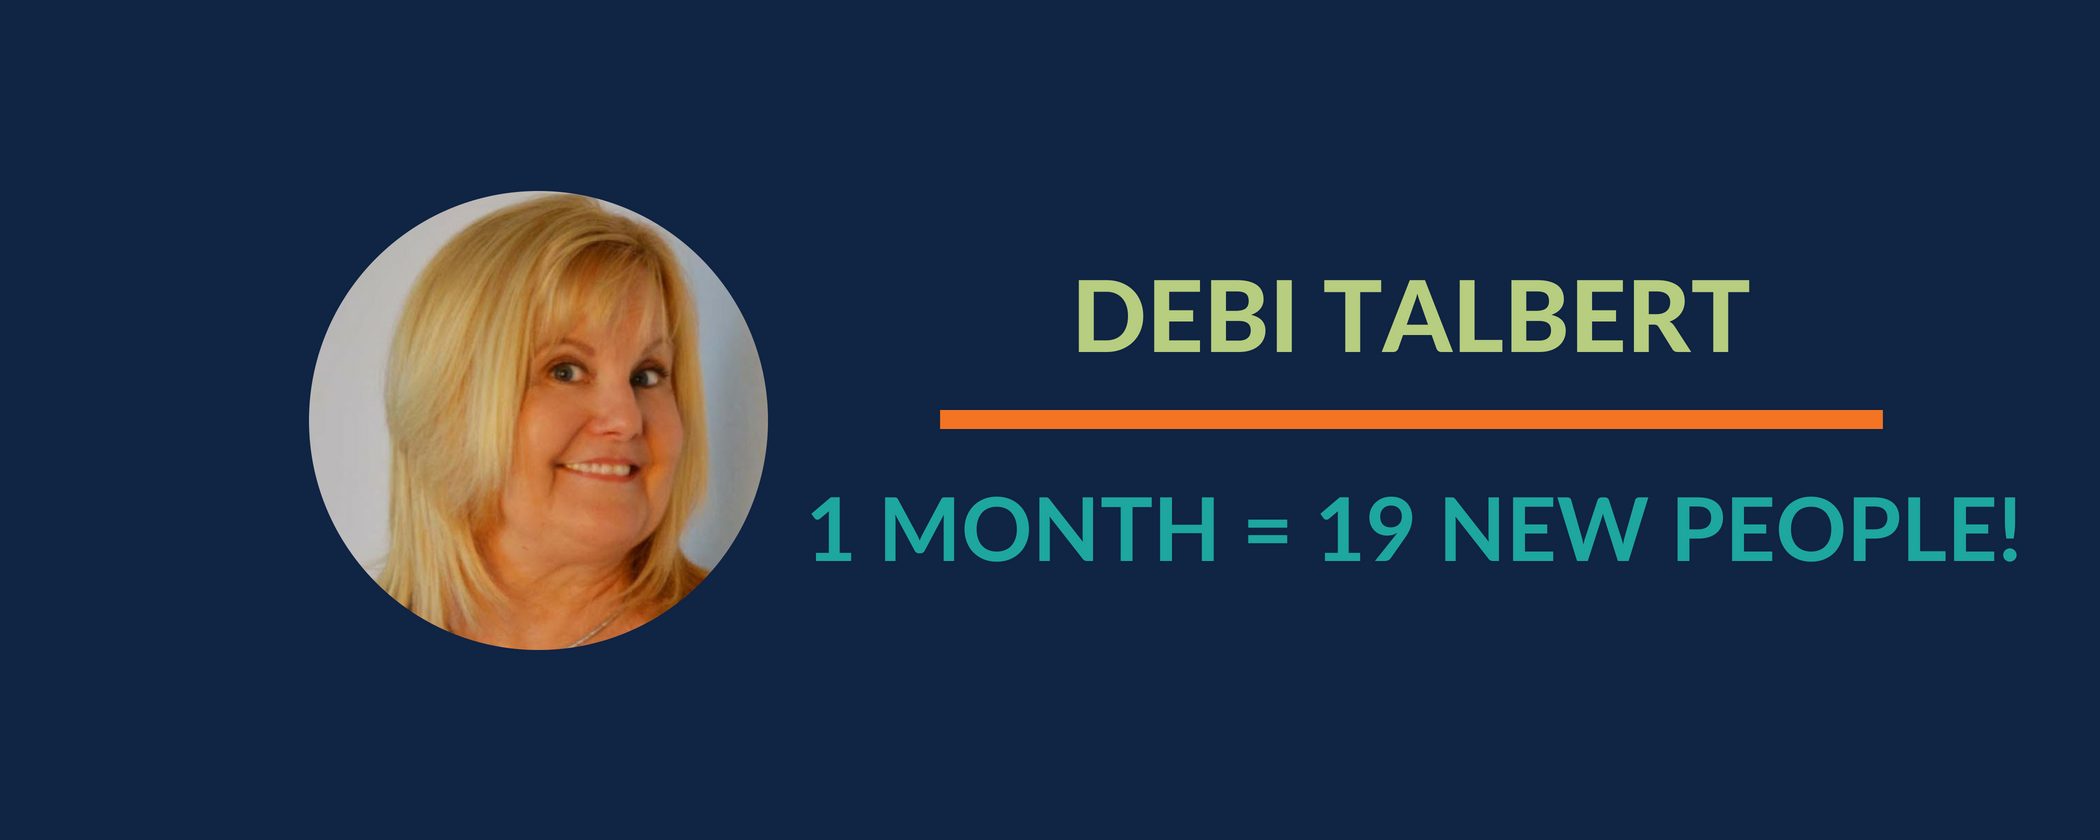 Success Story: What used to take 8 months to achieve, Debi now only takes a month to reach!